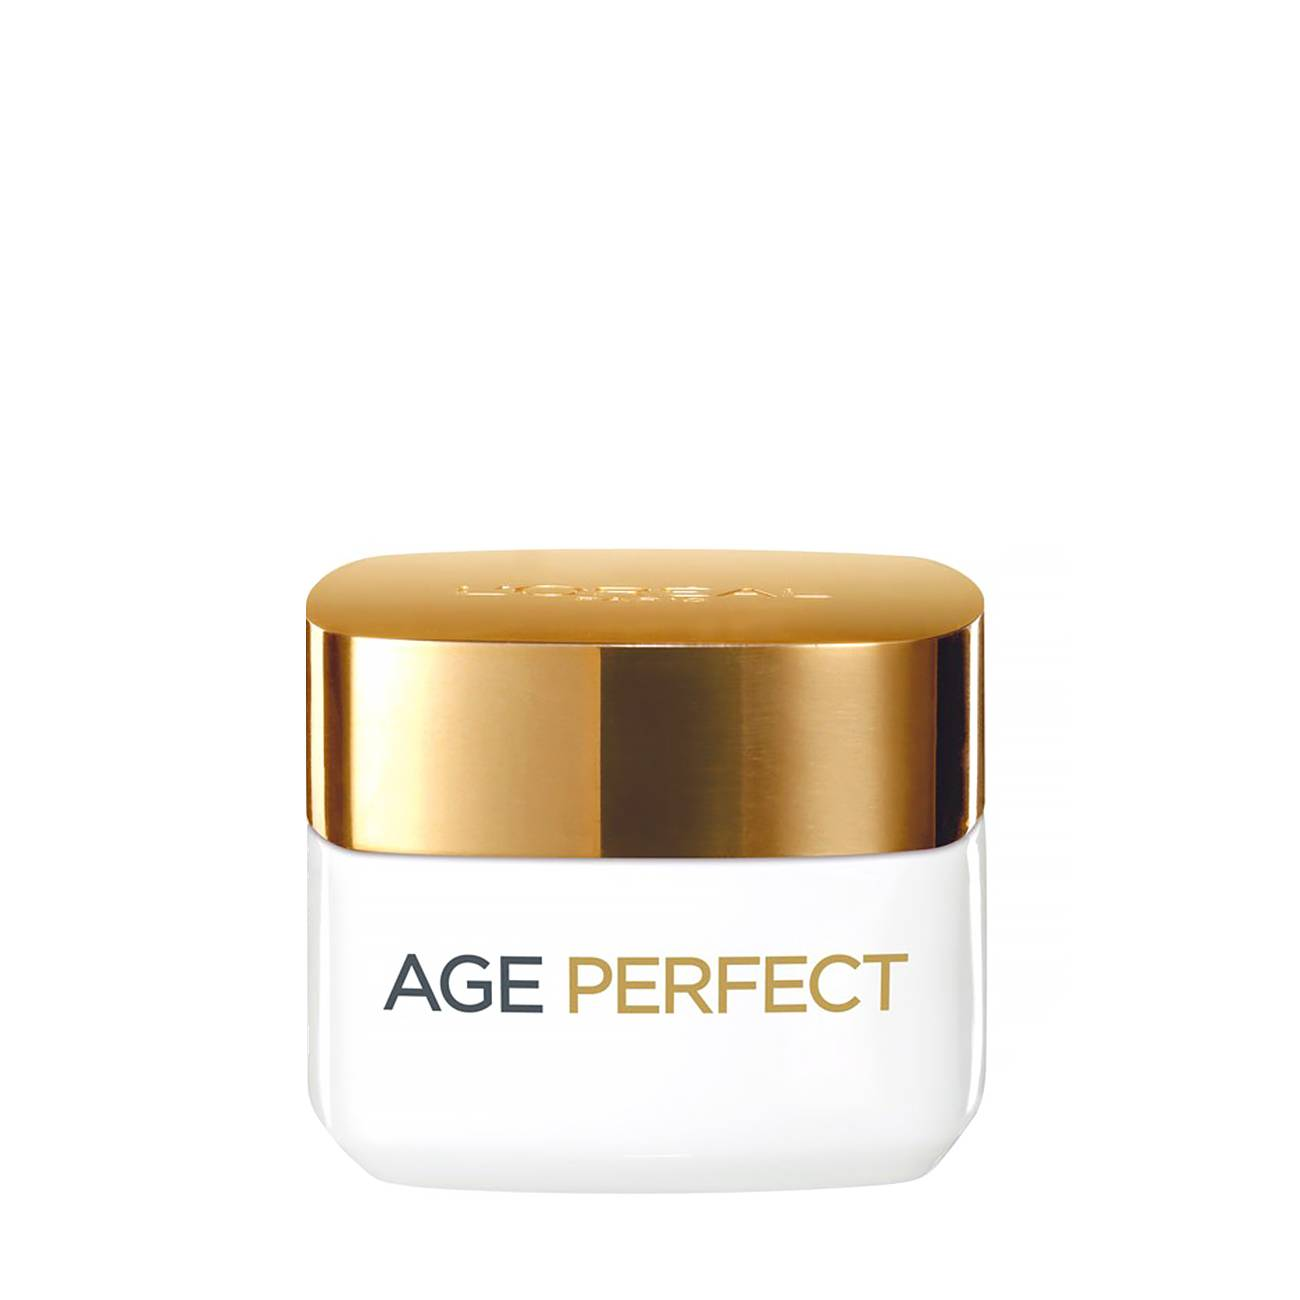 PLENITUDE AGE PERFECT 50 ML 50ml imagine produs